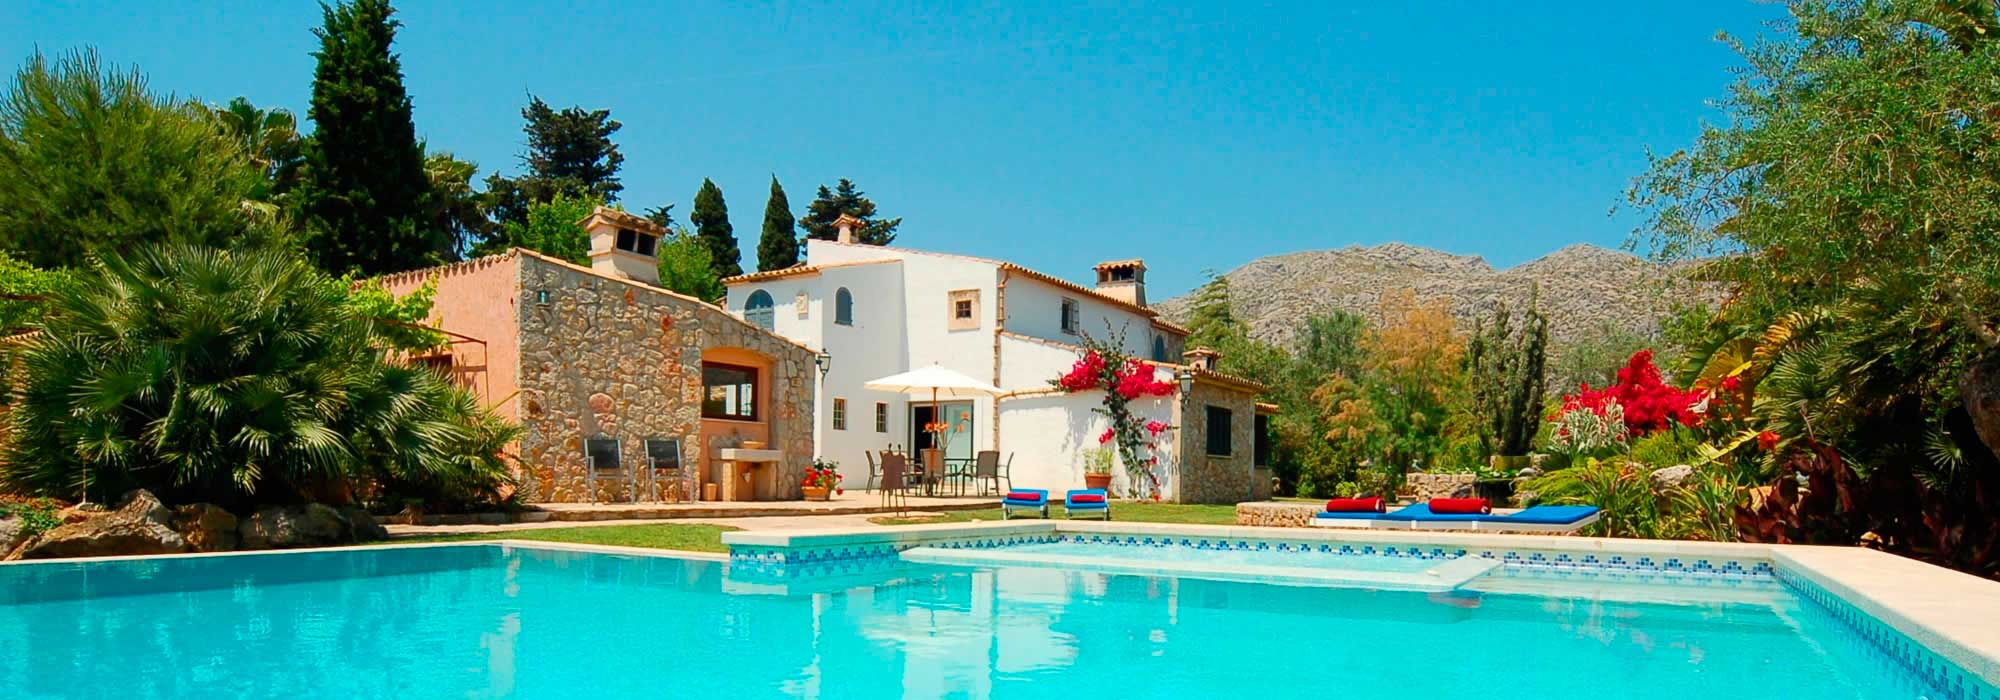 holiday mallorca villas to rent in pollensa. majorca.